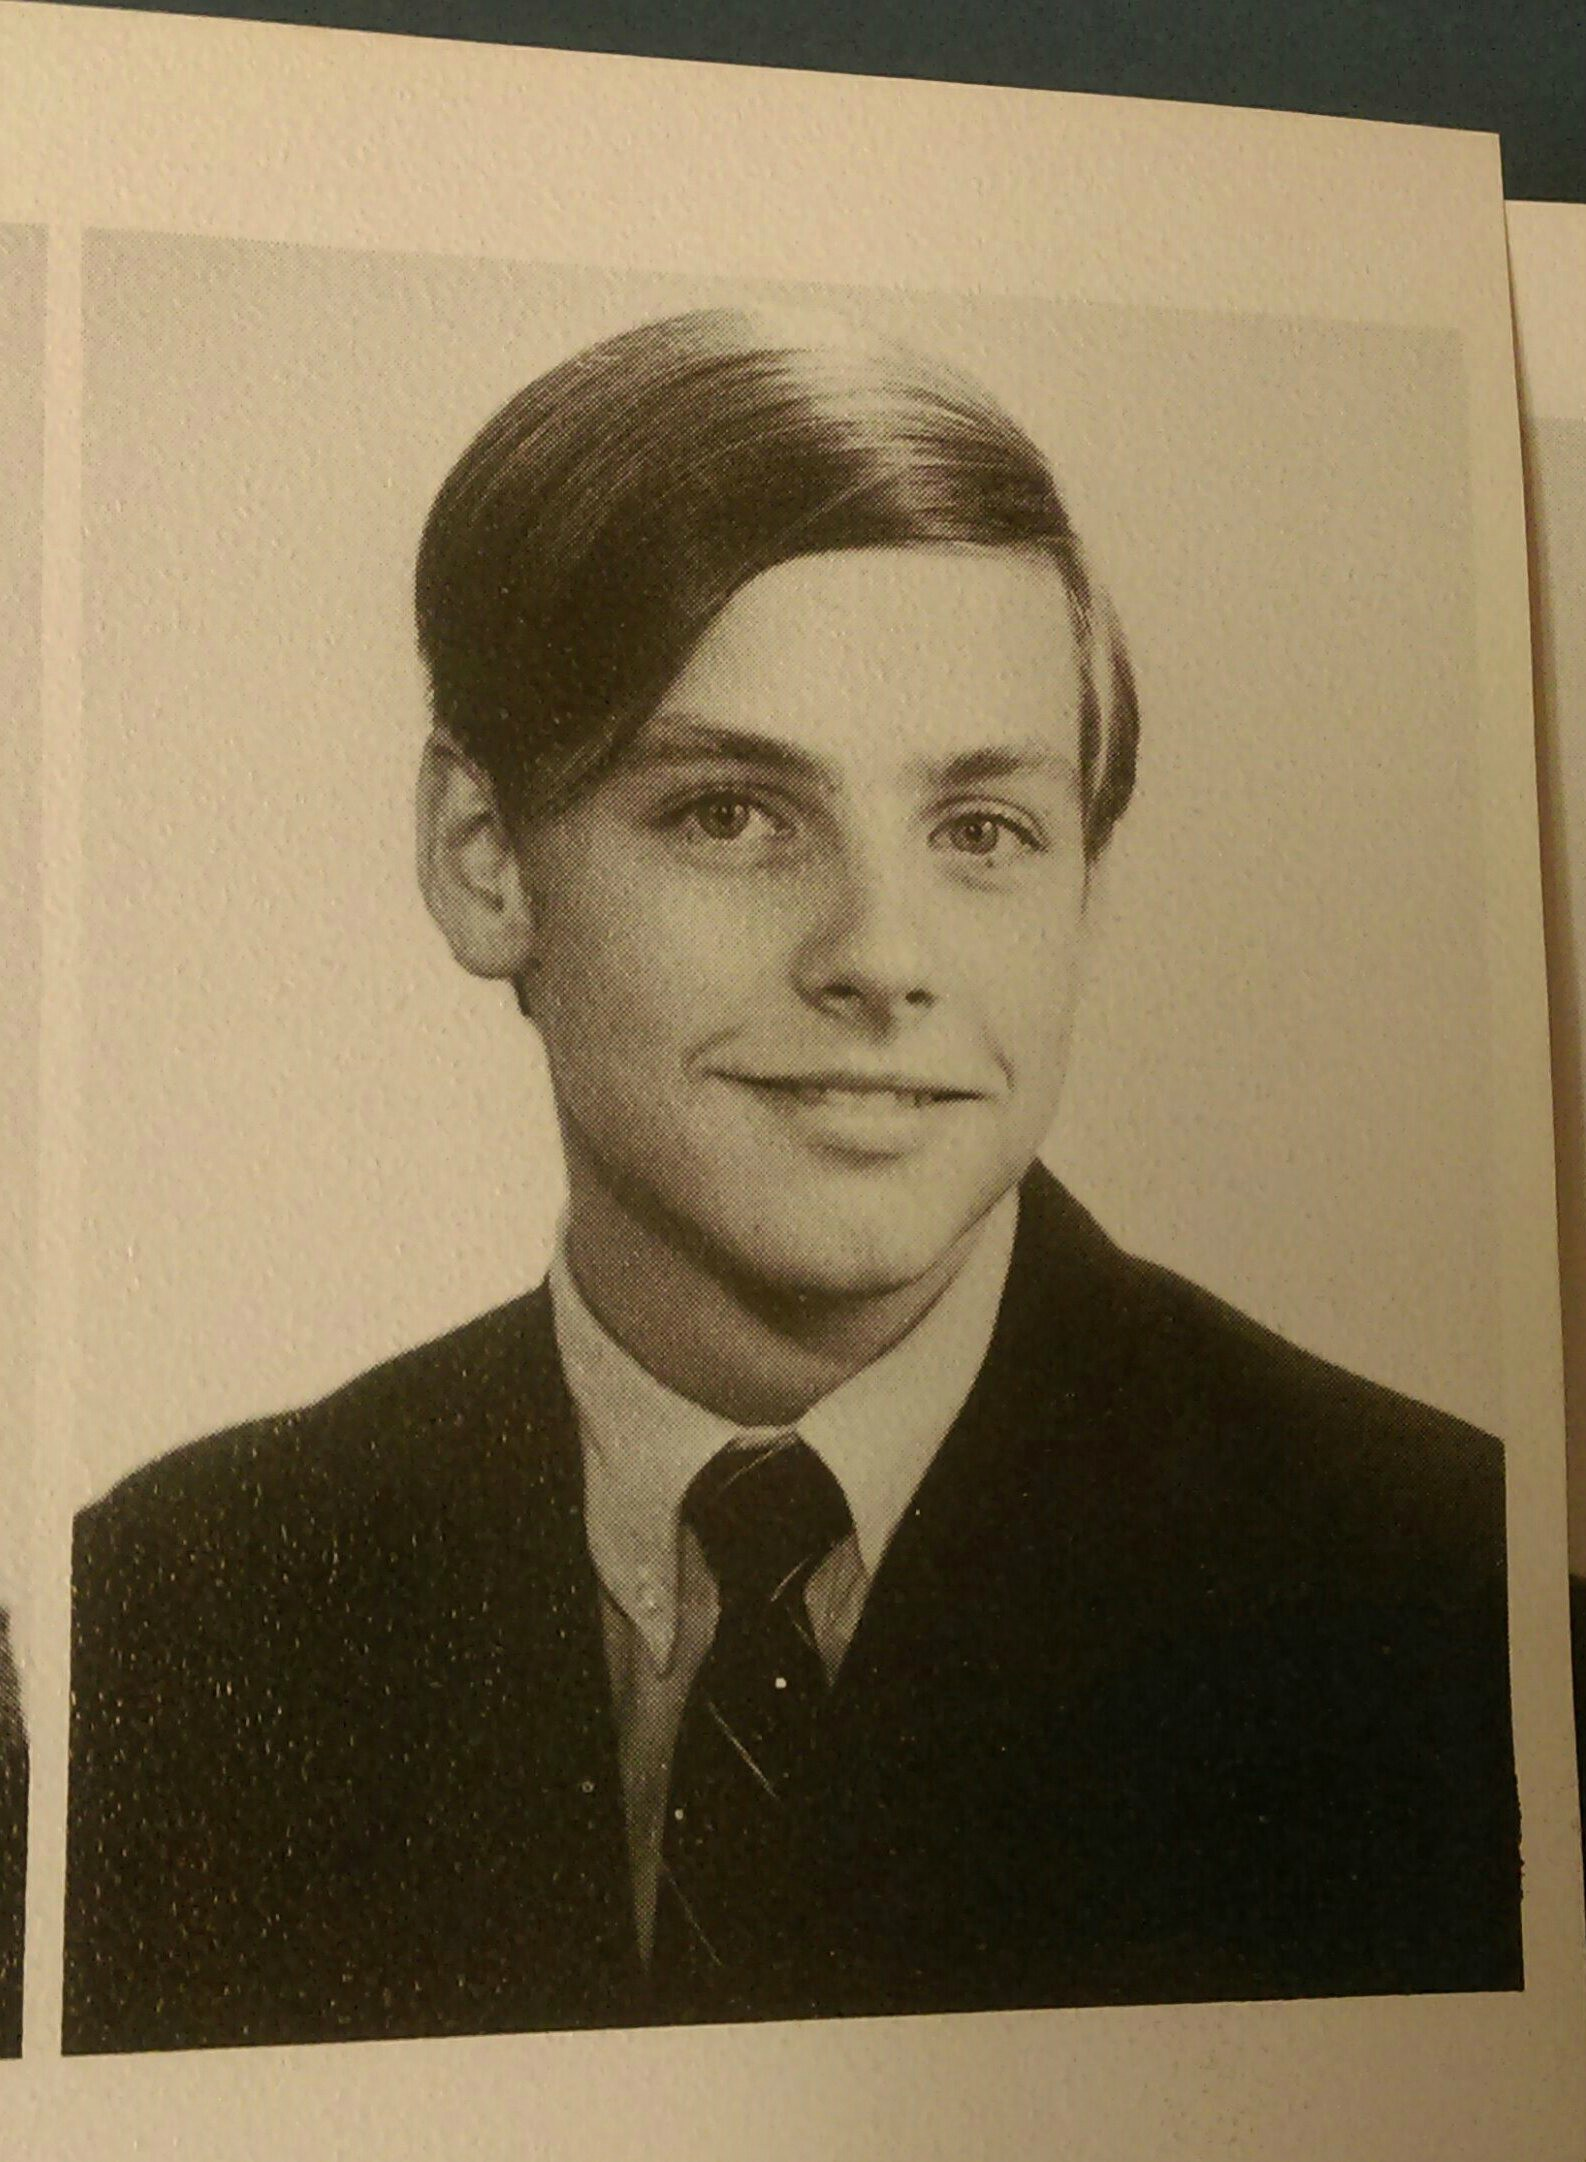 Mark Hamill yearbook photo one at Imgur.com at Imgur.com